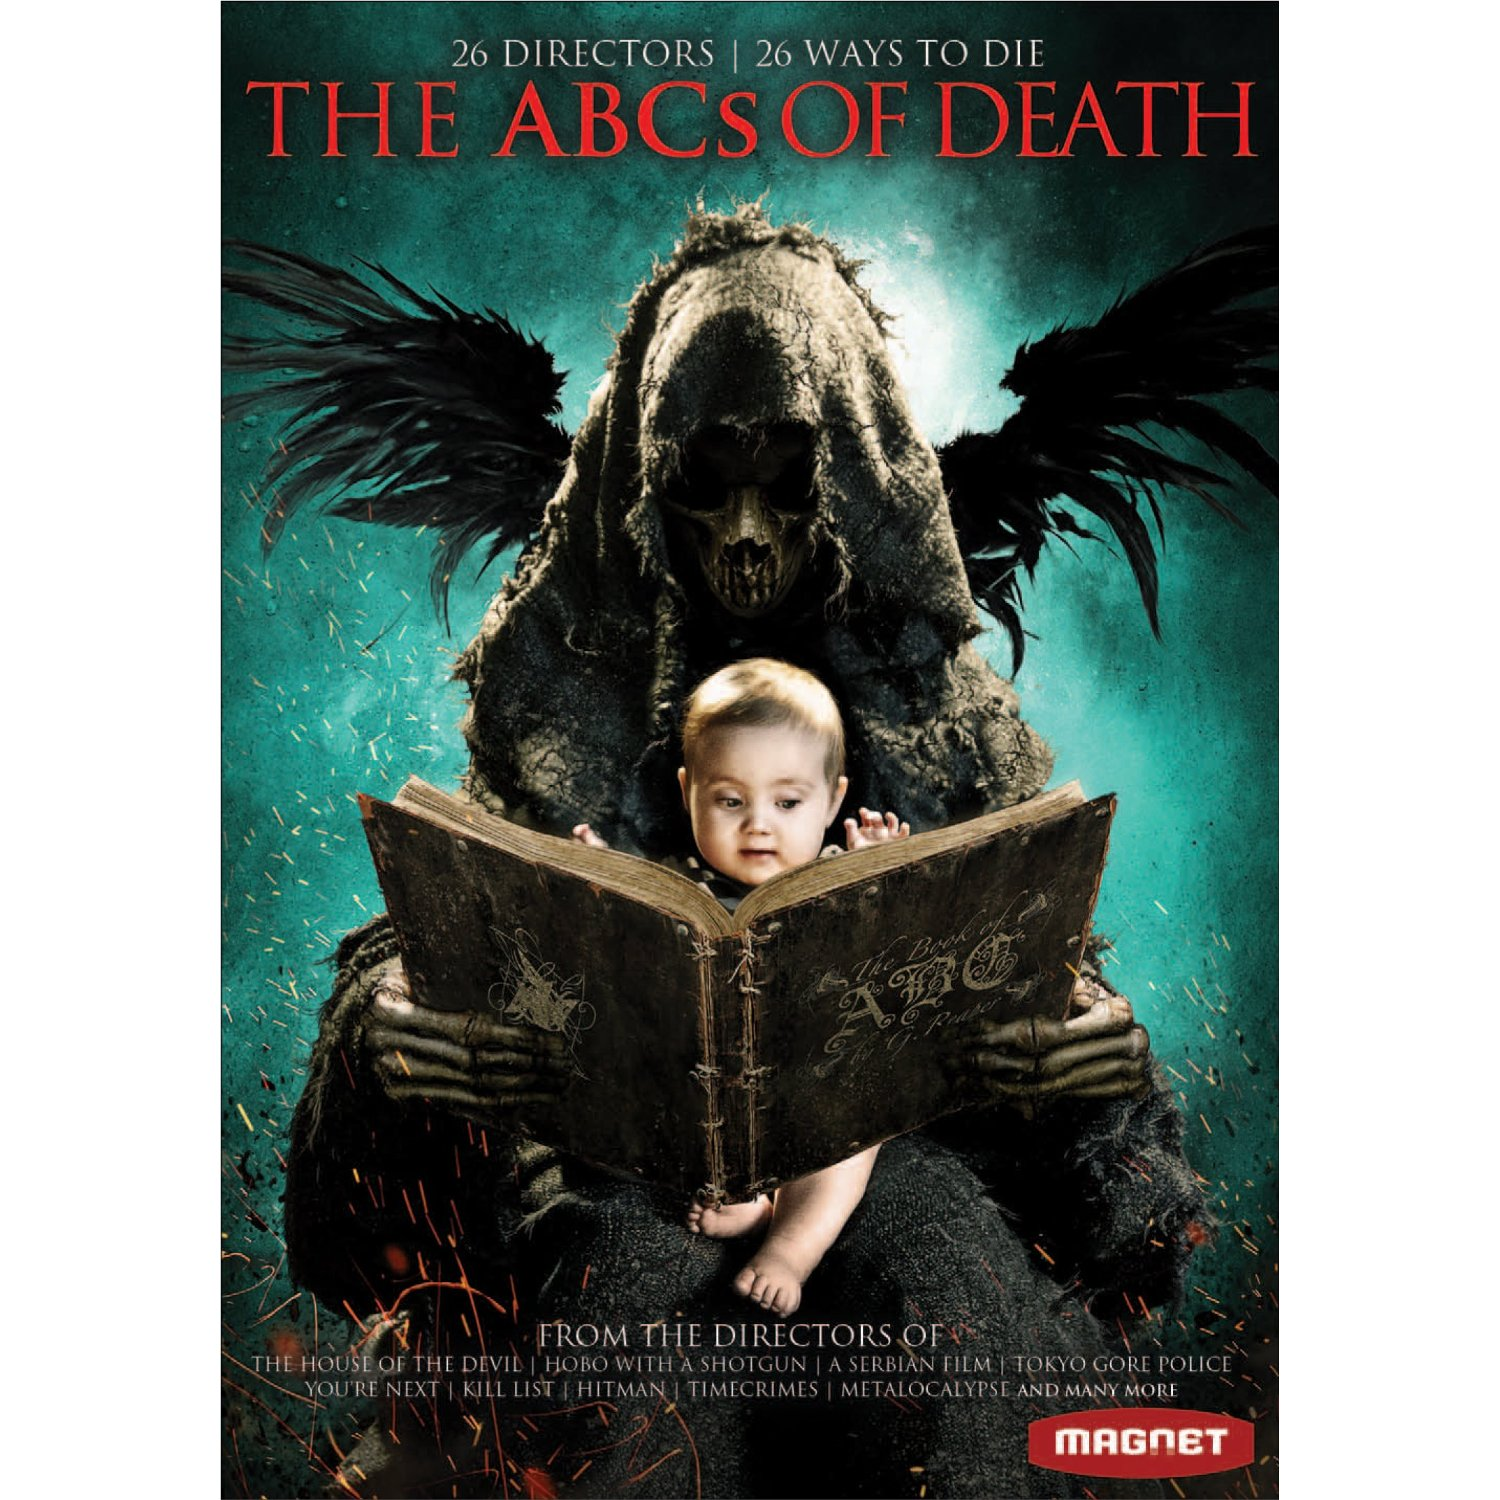 The ABCs of Death 2012 movie